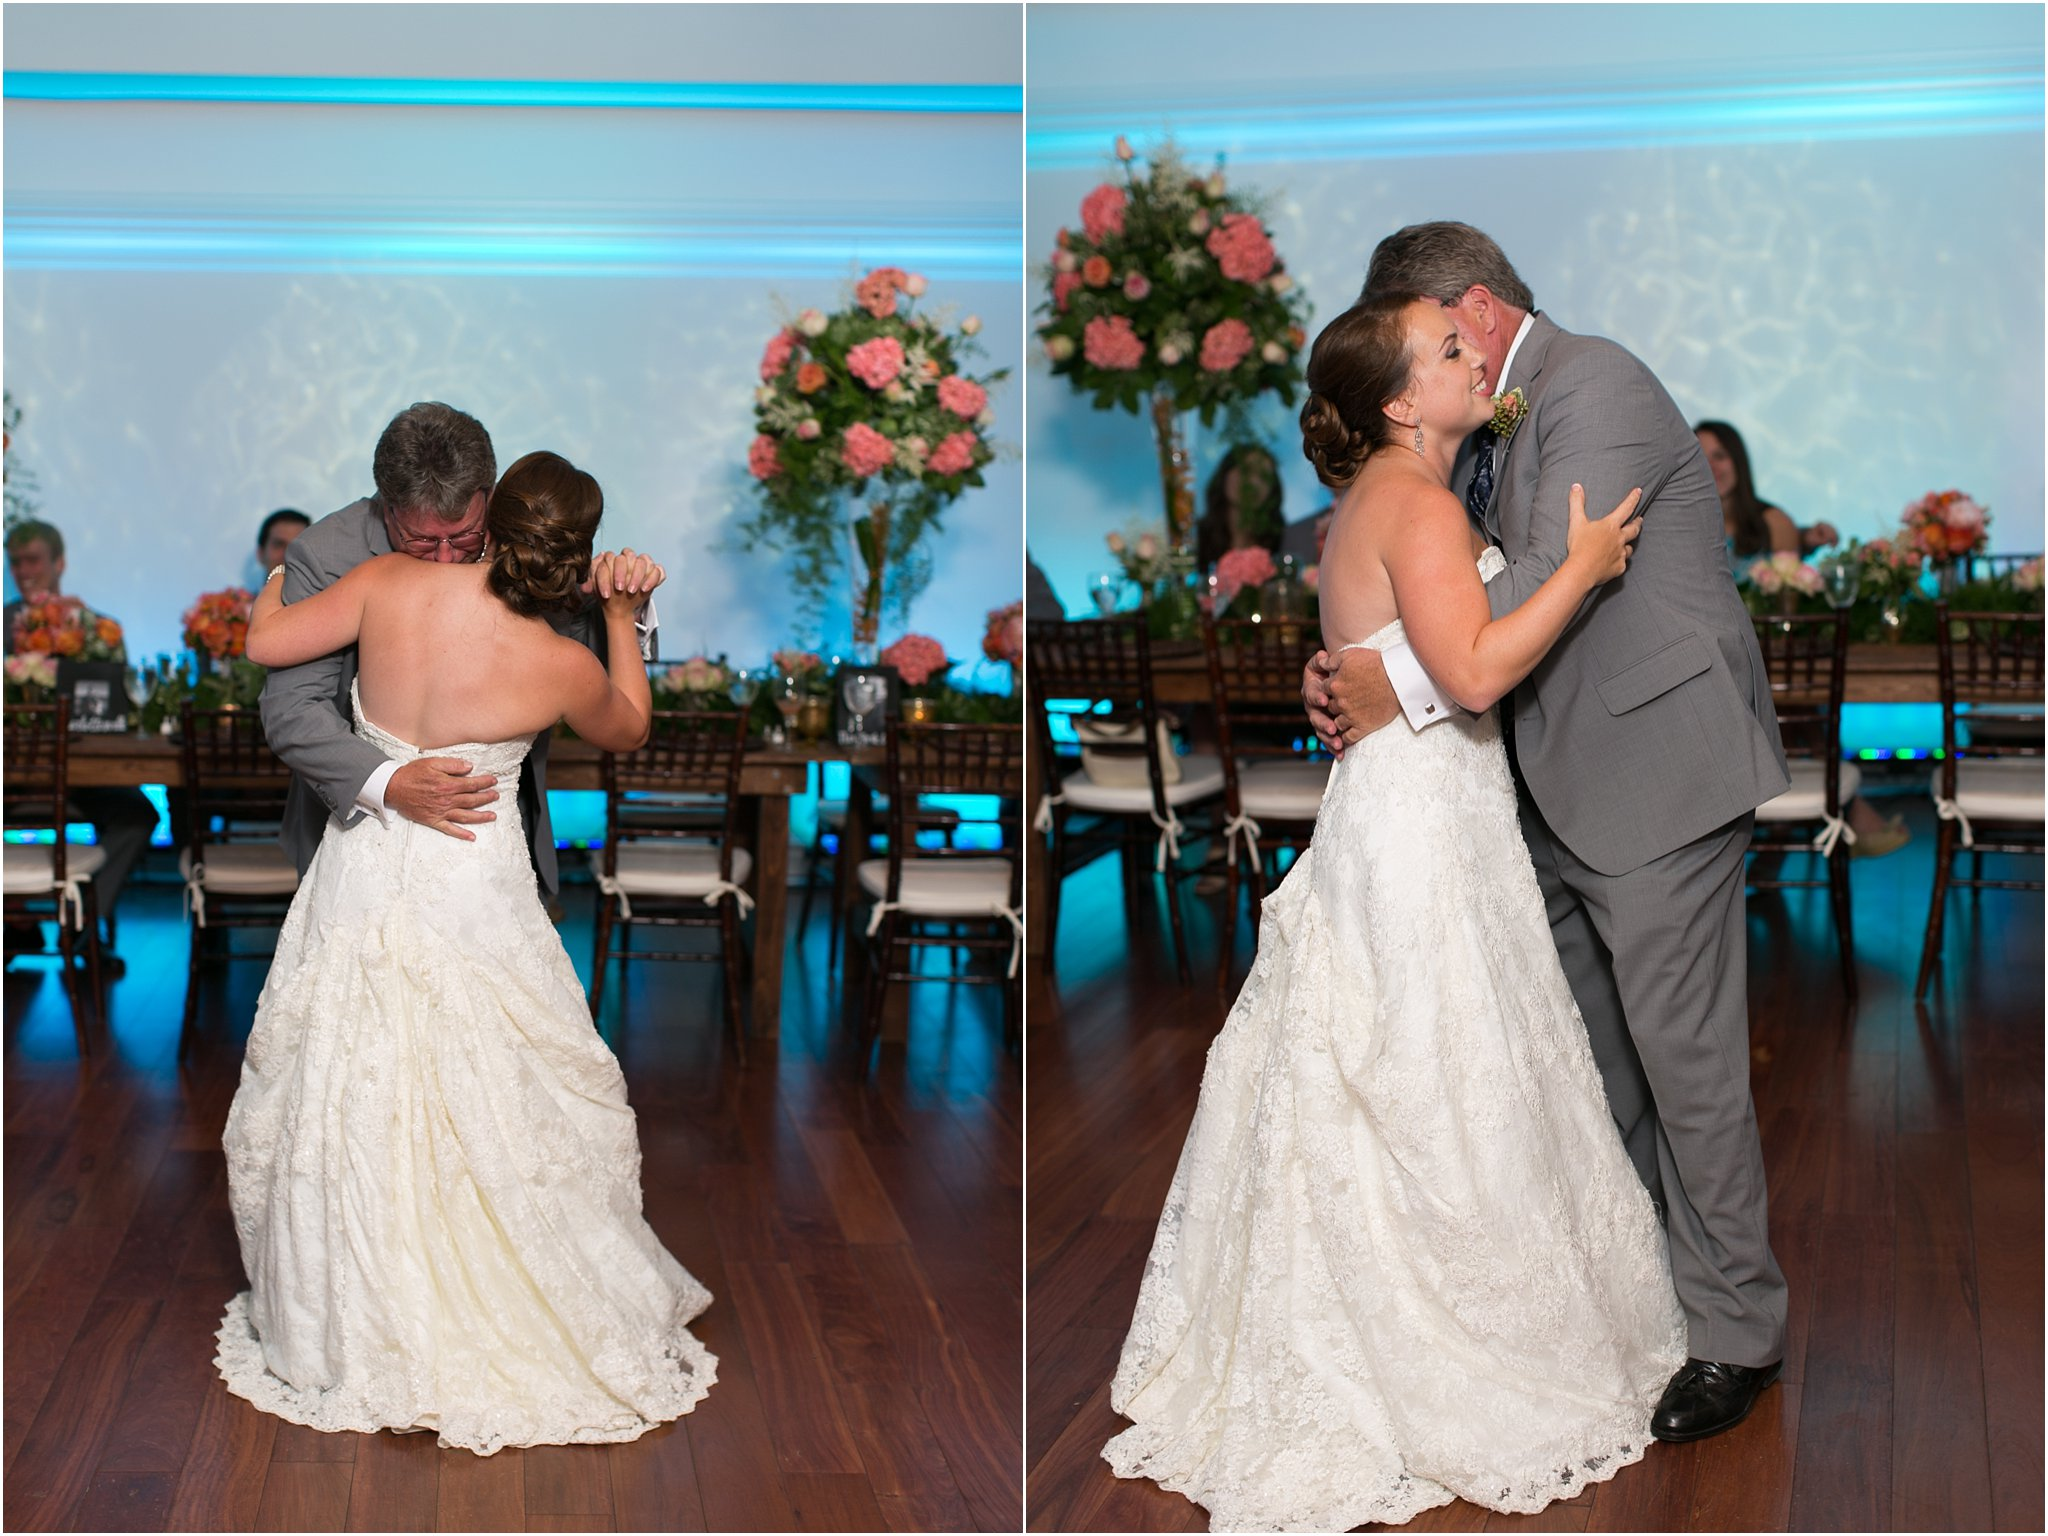 jessica_ryan_photography_wedding_photography_virginiabeach_virginia_candid_authentic_wedding_portraits_marina_shores_yacht_club_chesapeake_bay_1948